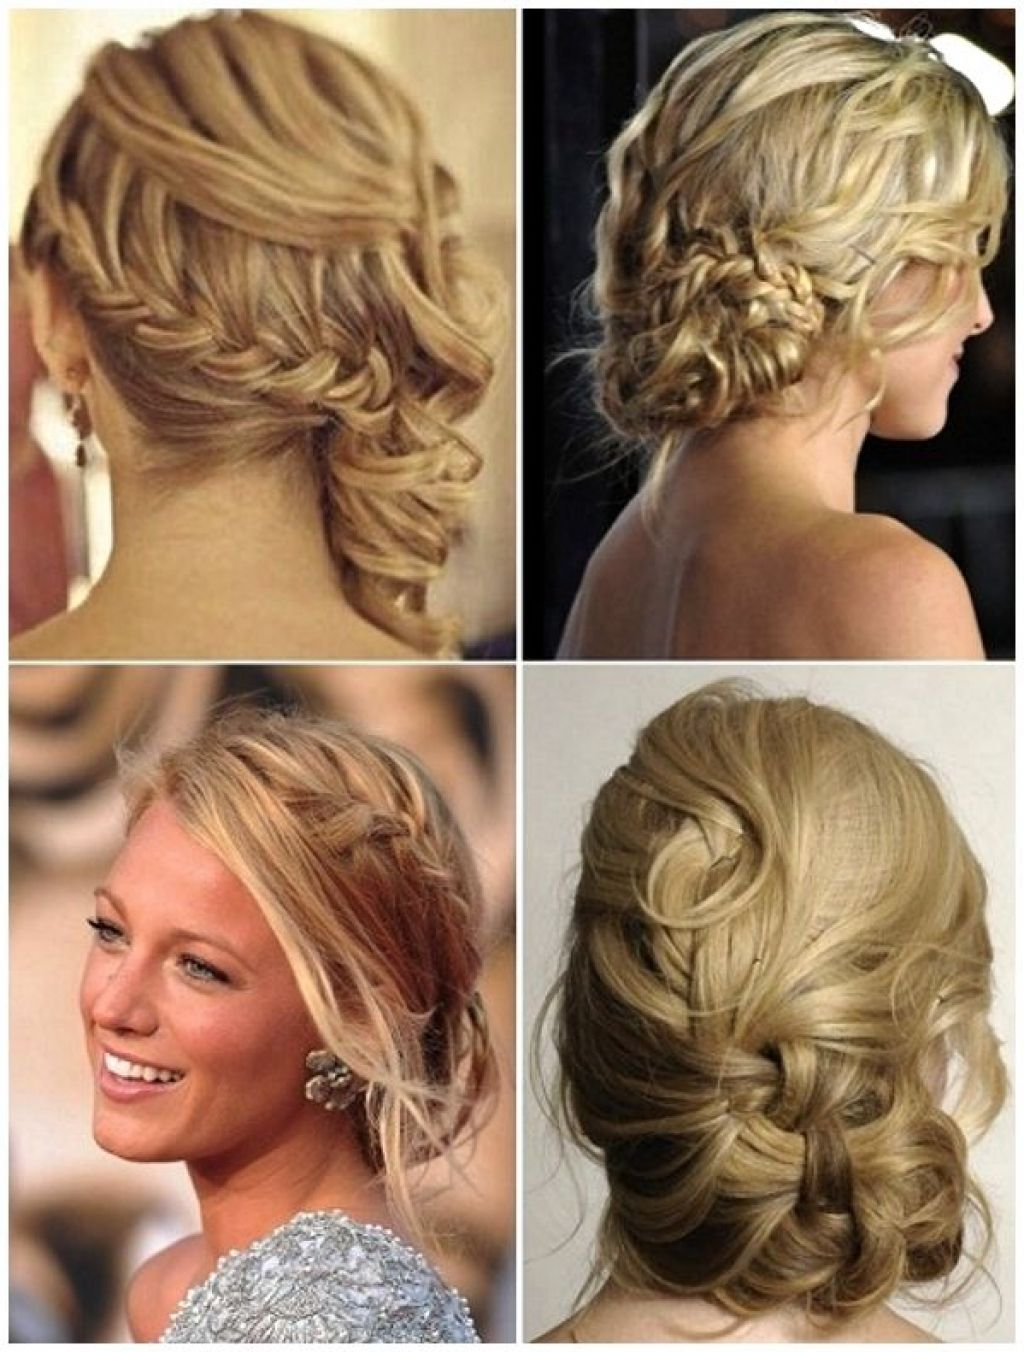 Hairstyle for wedding guest brides hairstyle ideas hairstyles for